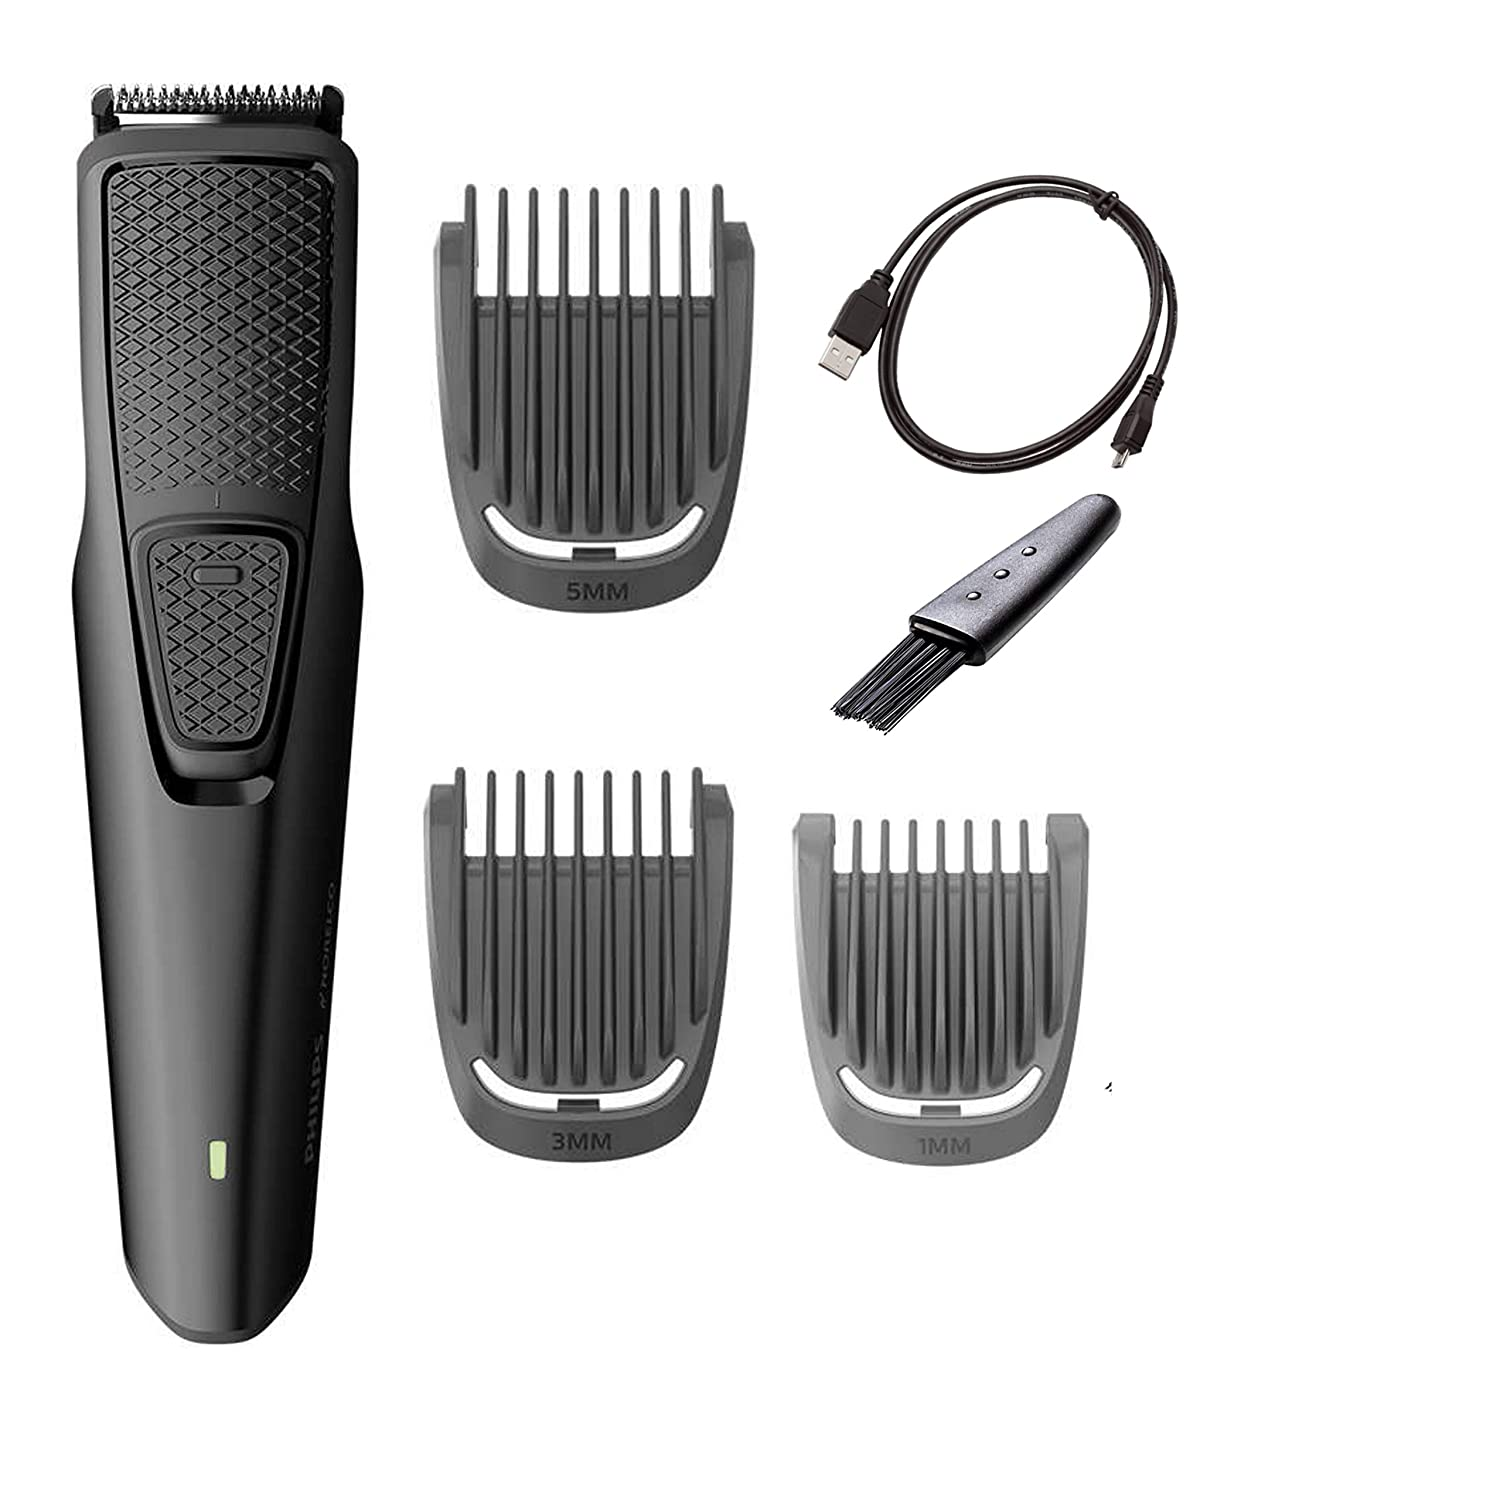 Philips Norelco Beard and Stubble Trimmer with 3 Attachments Cordless Hair Clipper Lightweight and USB Charging- Great for Travel